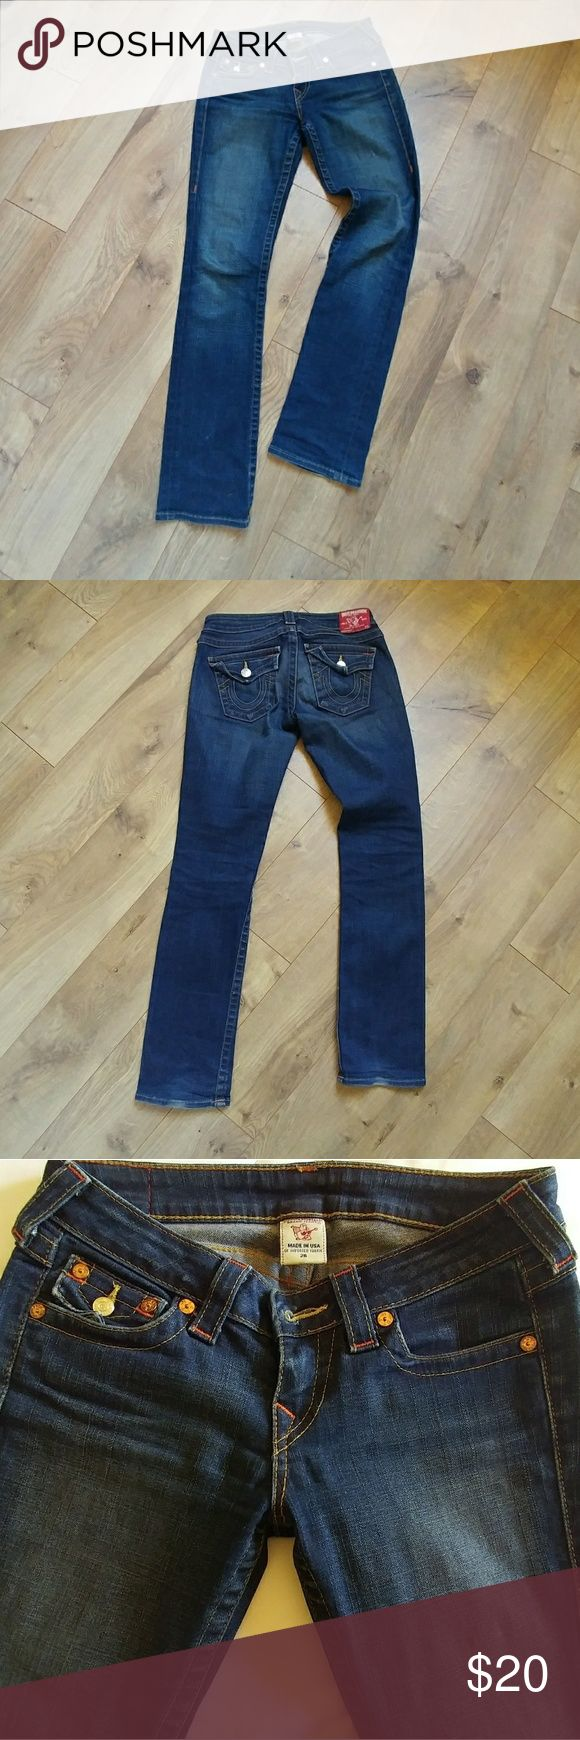 """Dark Wash True Religion jeans 5 pocket, straight leg, dark wash jeans.  With copper color stitching, & copper button detail in the front. Signature back pockets with silver buttons. Imported fabric. Great condition. Great fit! 99% cotton, 1% elastine. Inseam: 31"""" outside seam: 39"""" rise: 7 1/2""""  🌟The 3rd pic is what the real color looks like🌟. 💲Offers welcome!! True Religion Jeans Straight Leg"""